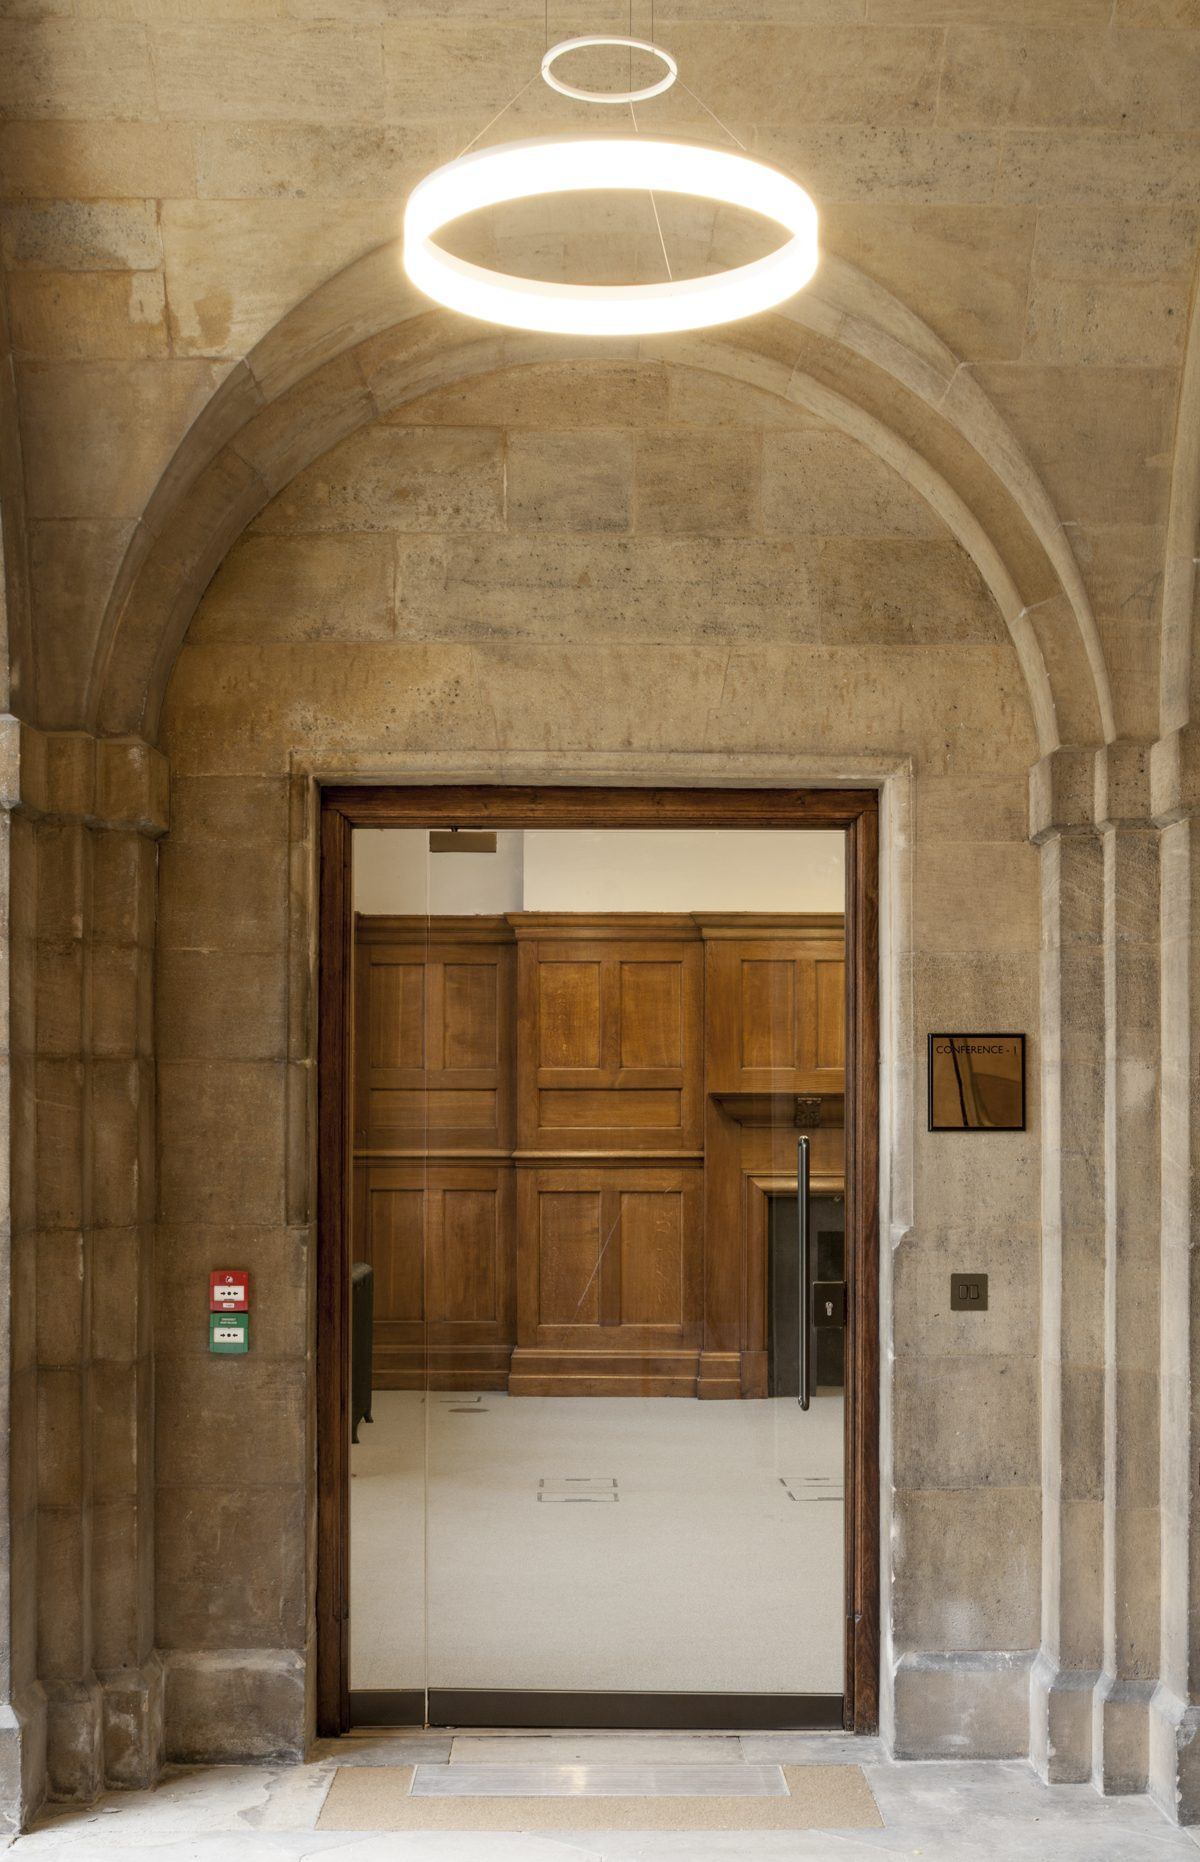 Rhodes Building, Oriel College,, Oxford - Exterior - Entrance